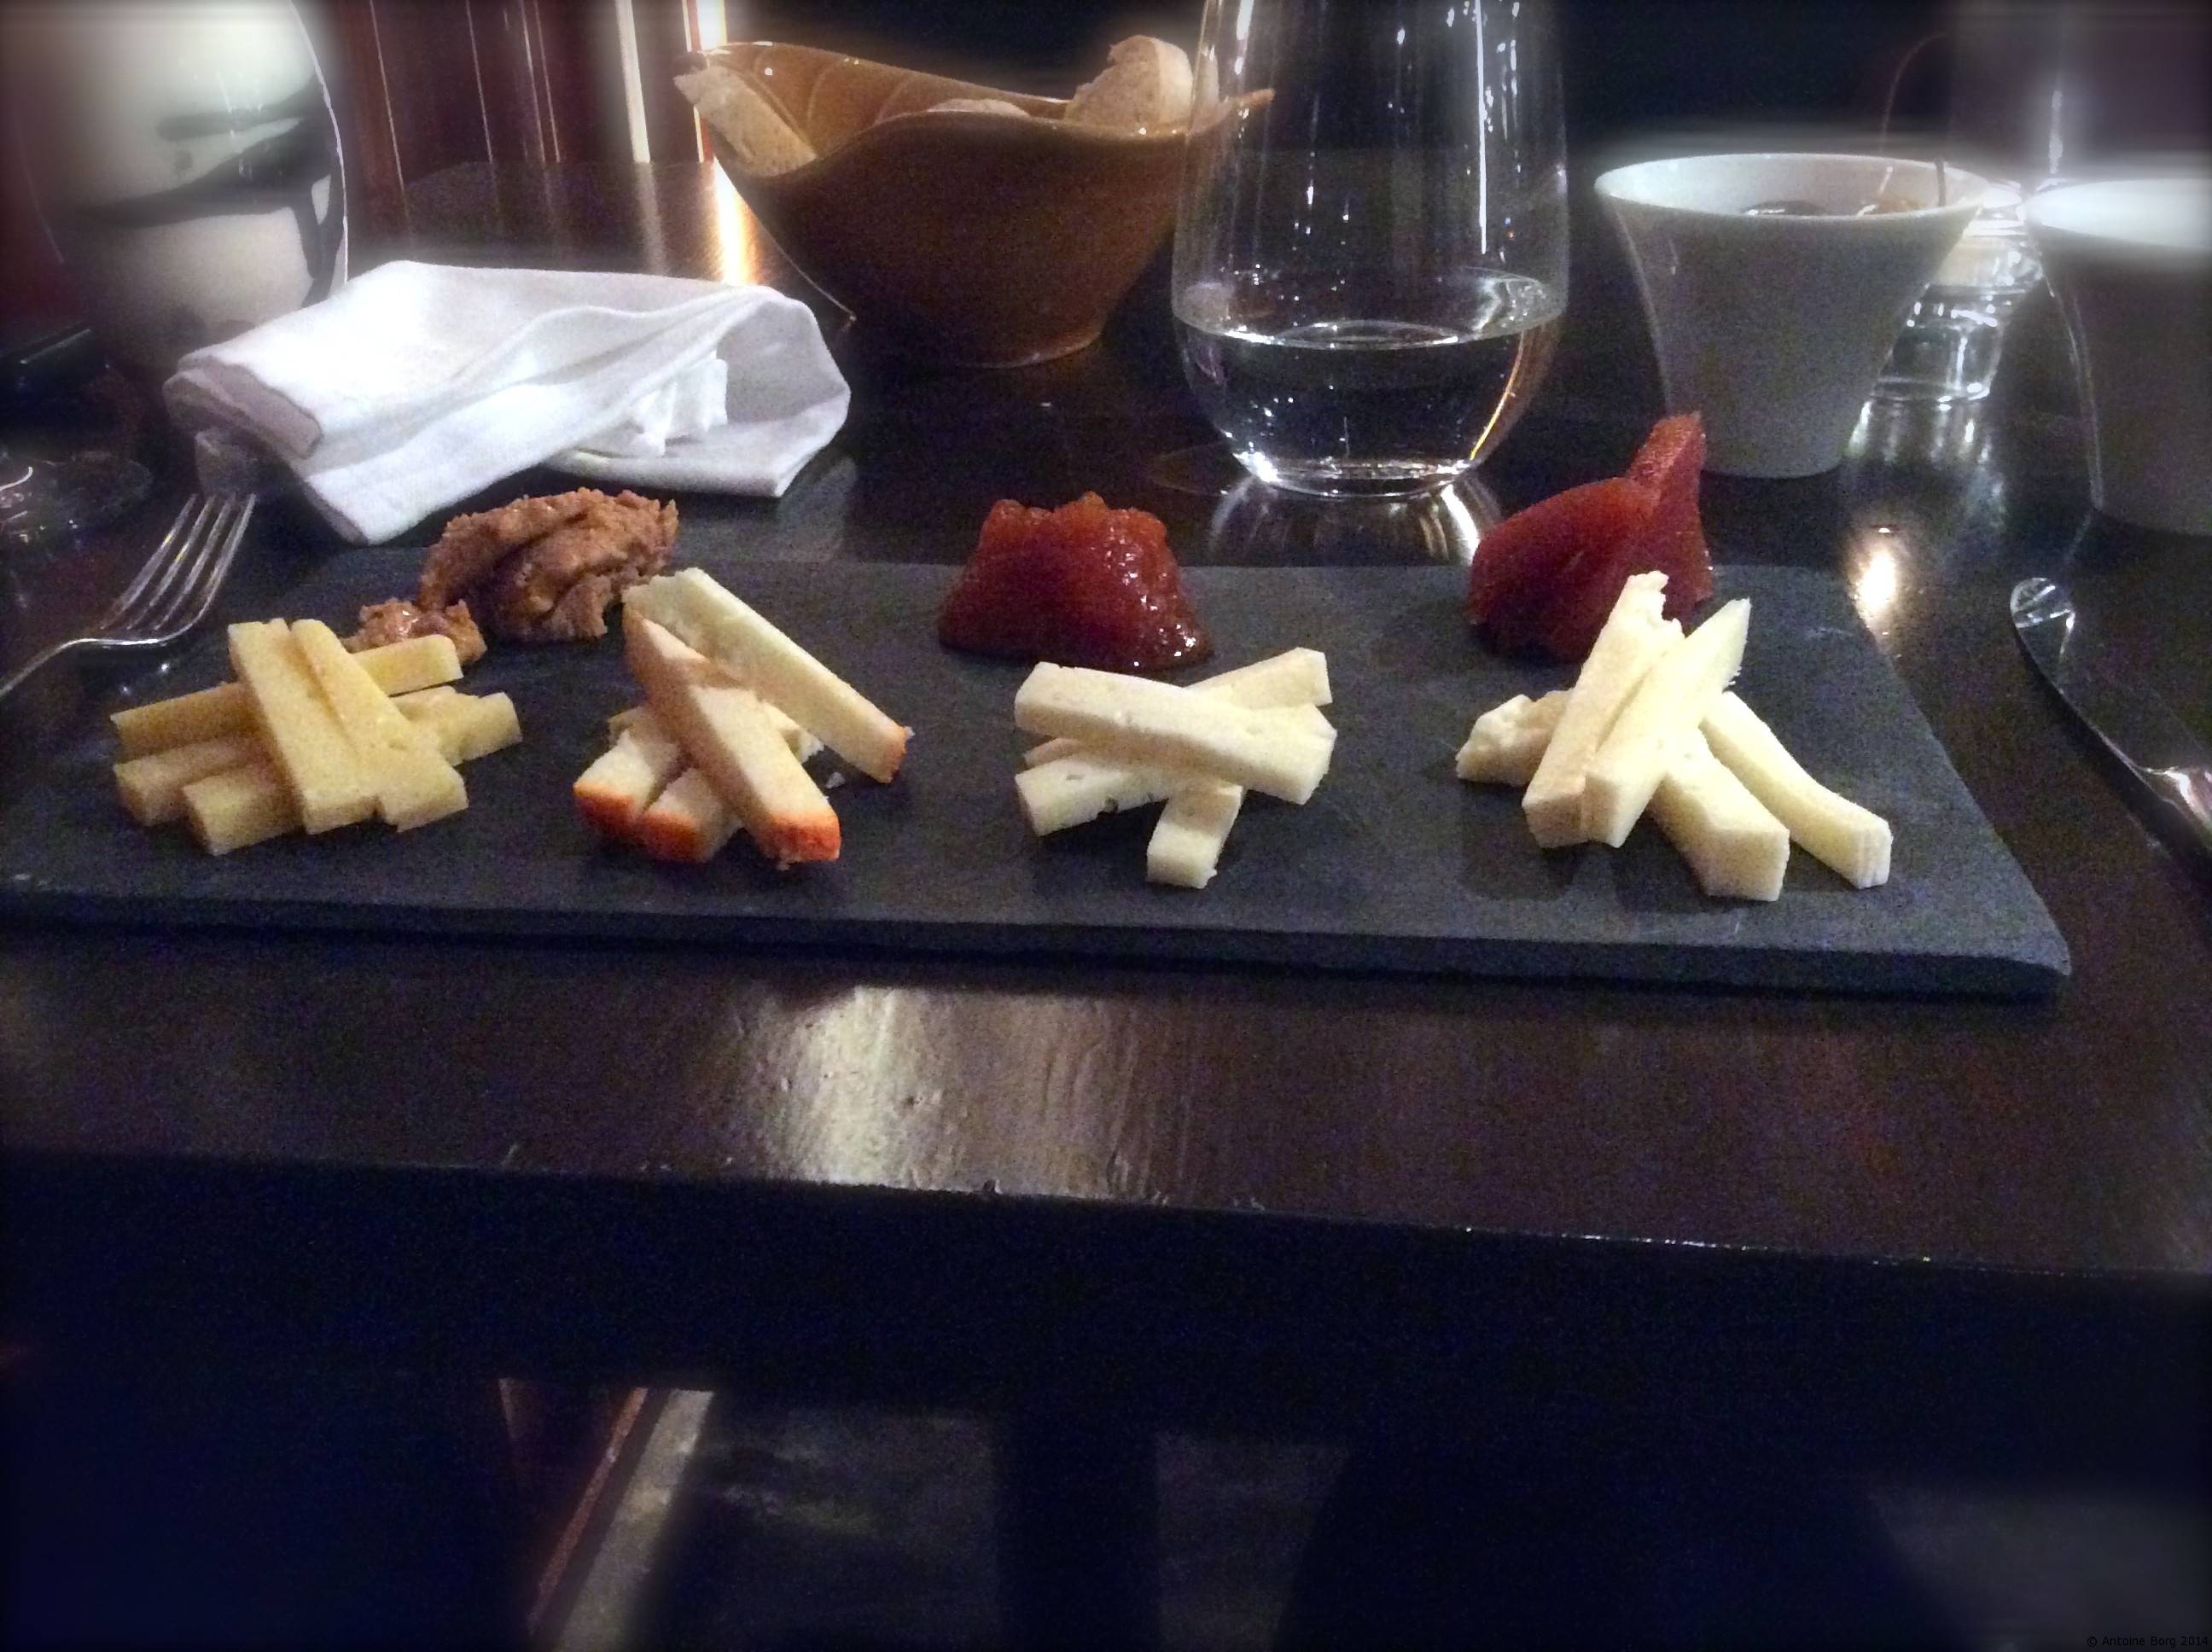 A photo of the cheese dish and selected chutneys